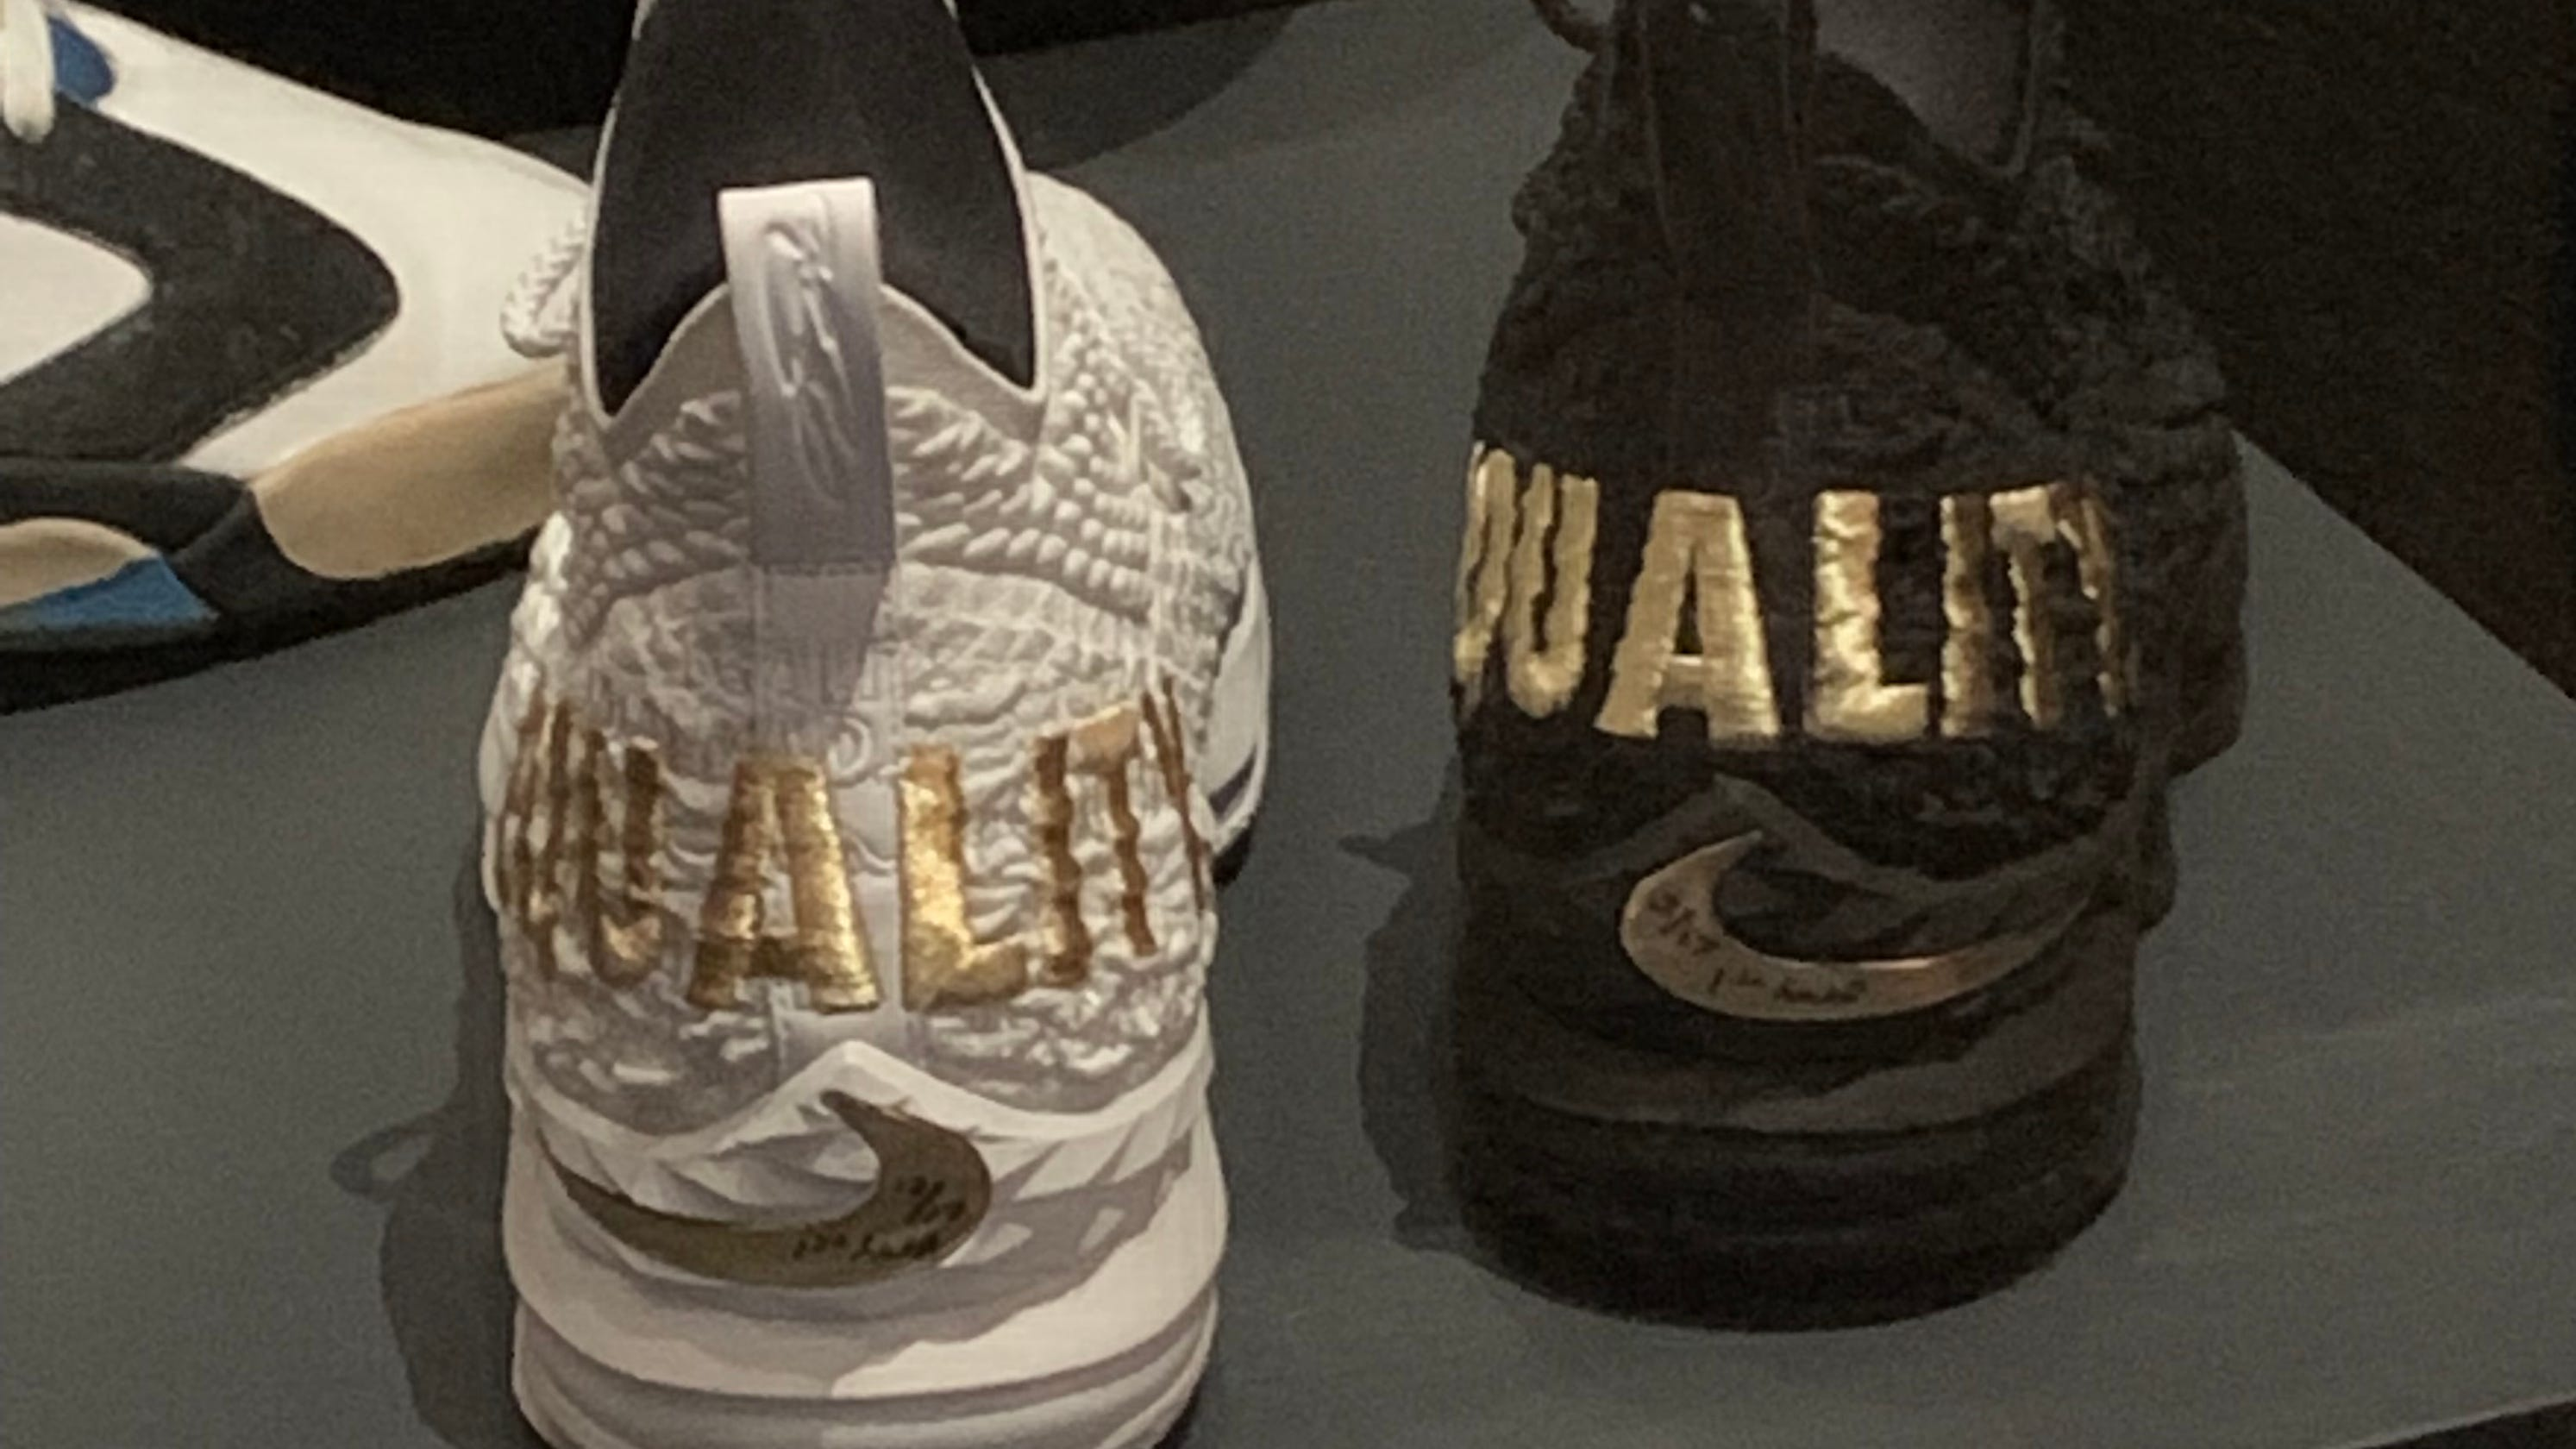 6206fb3f95e LeBron James  His game-worn Equality sneakers on display in museum